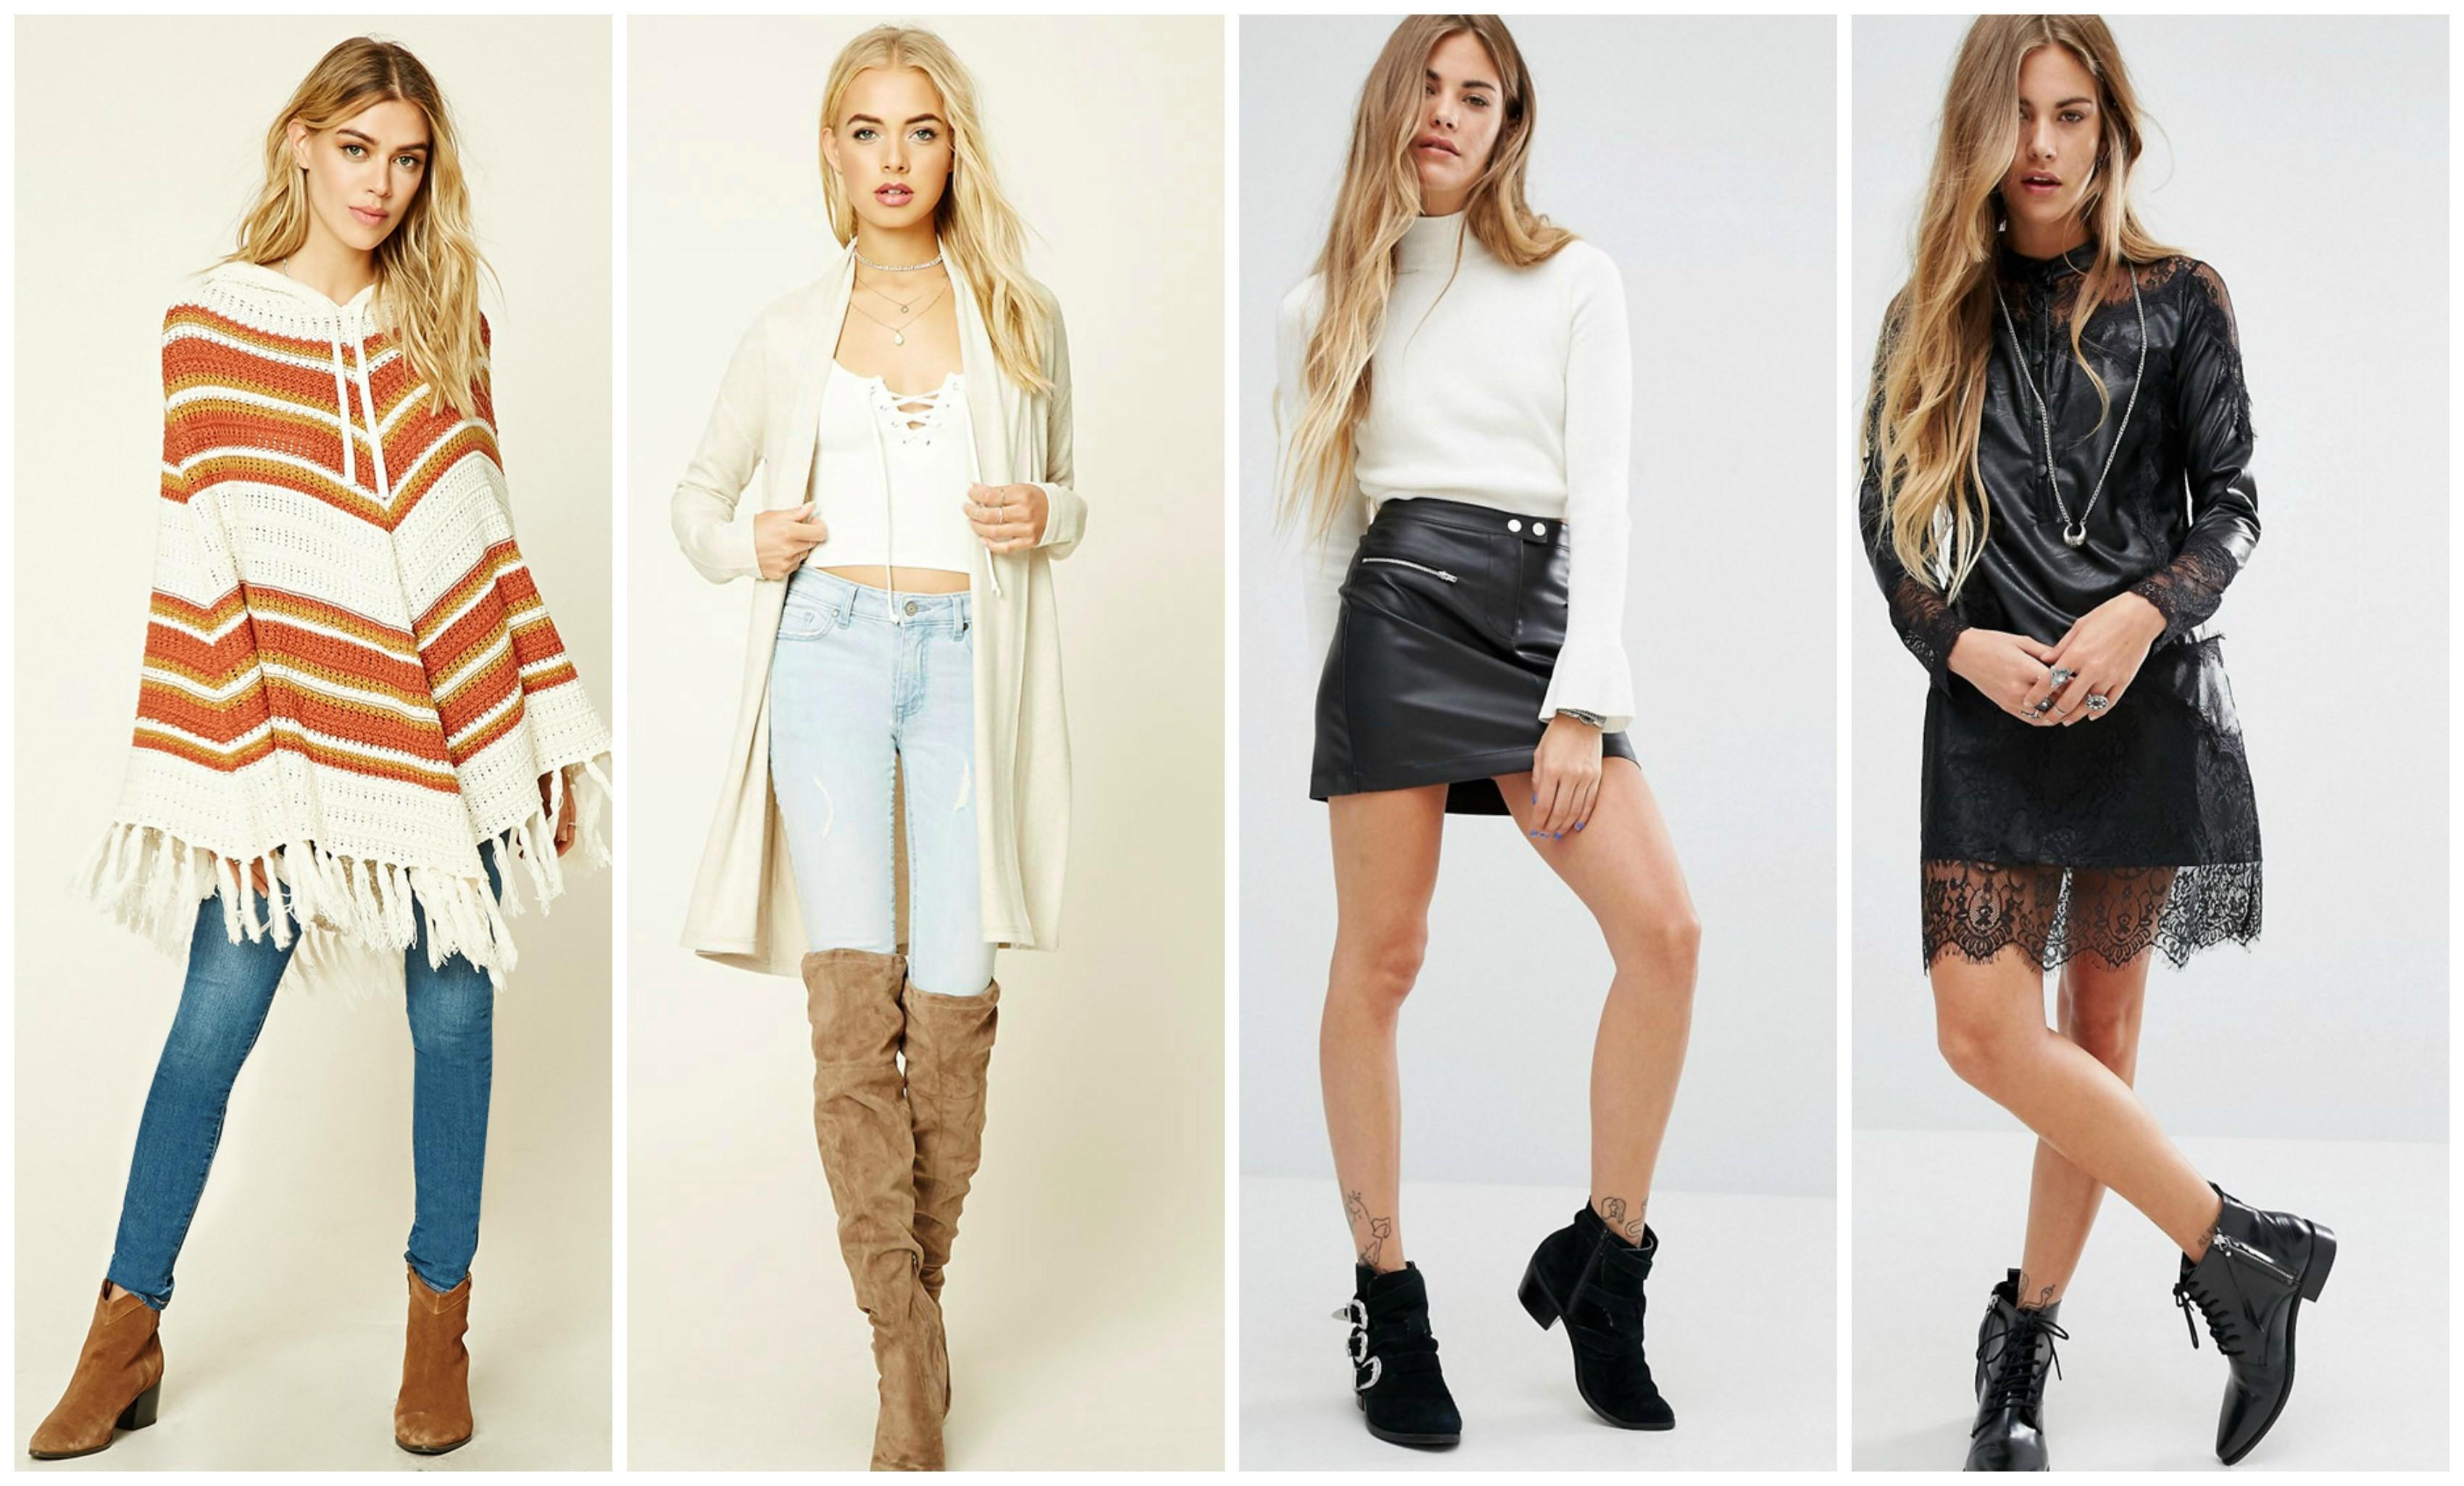 2016 Fall 2017 Winter Fashion Trends Teens Styles